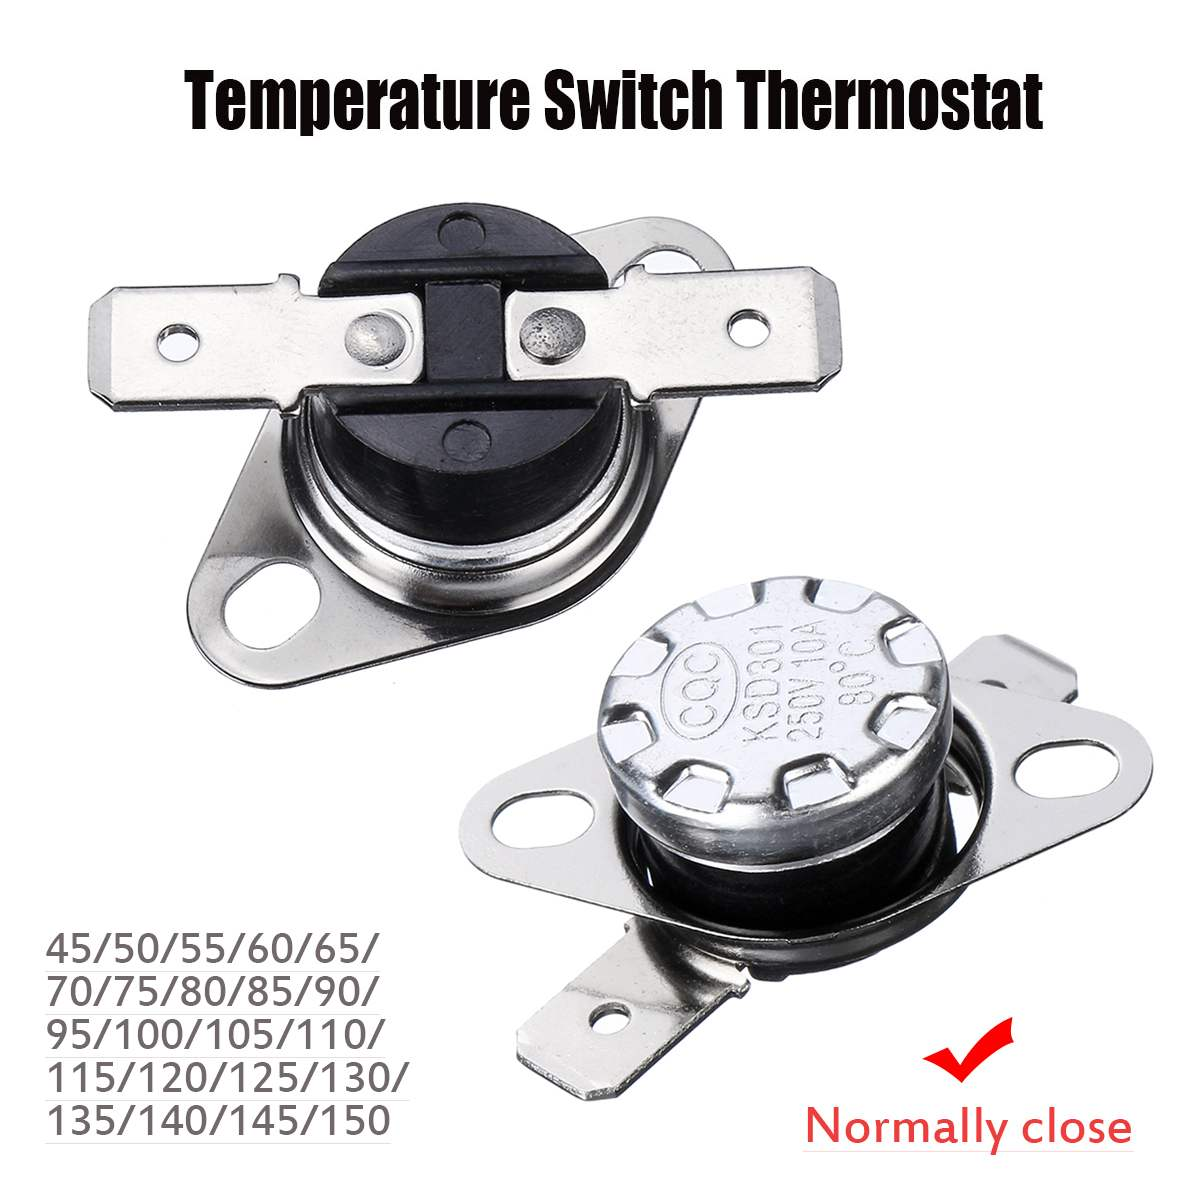 Normal Open 1pcs KSD301 Temperature Controlled Switch Thermostat 85°C N.O